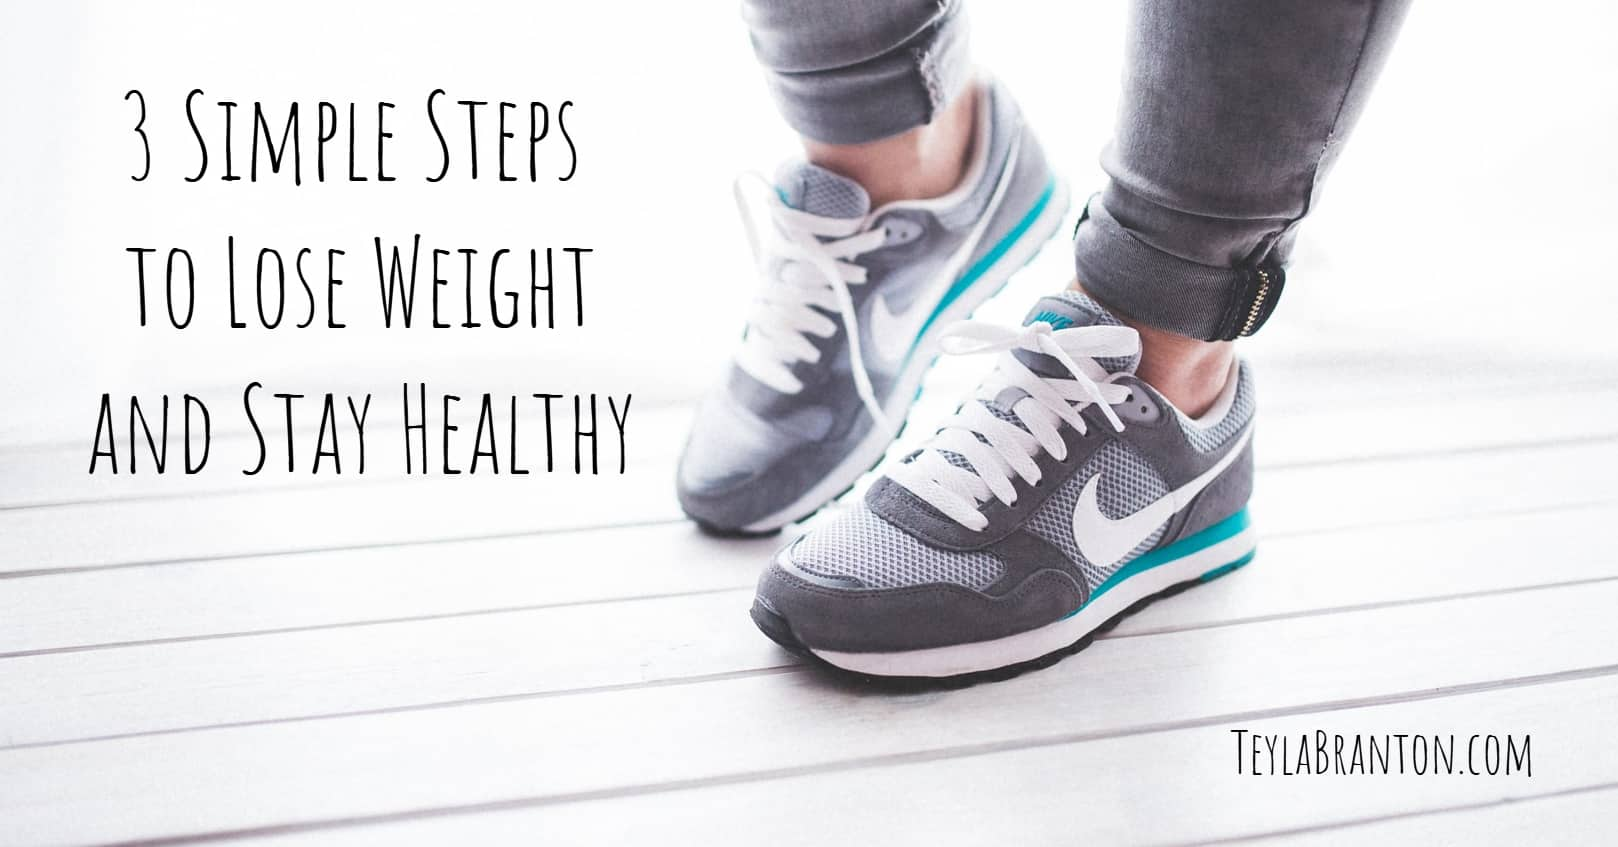 3 Simple Steps to Lose Weight and Stay Healthy